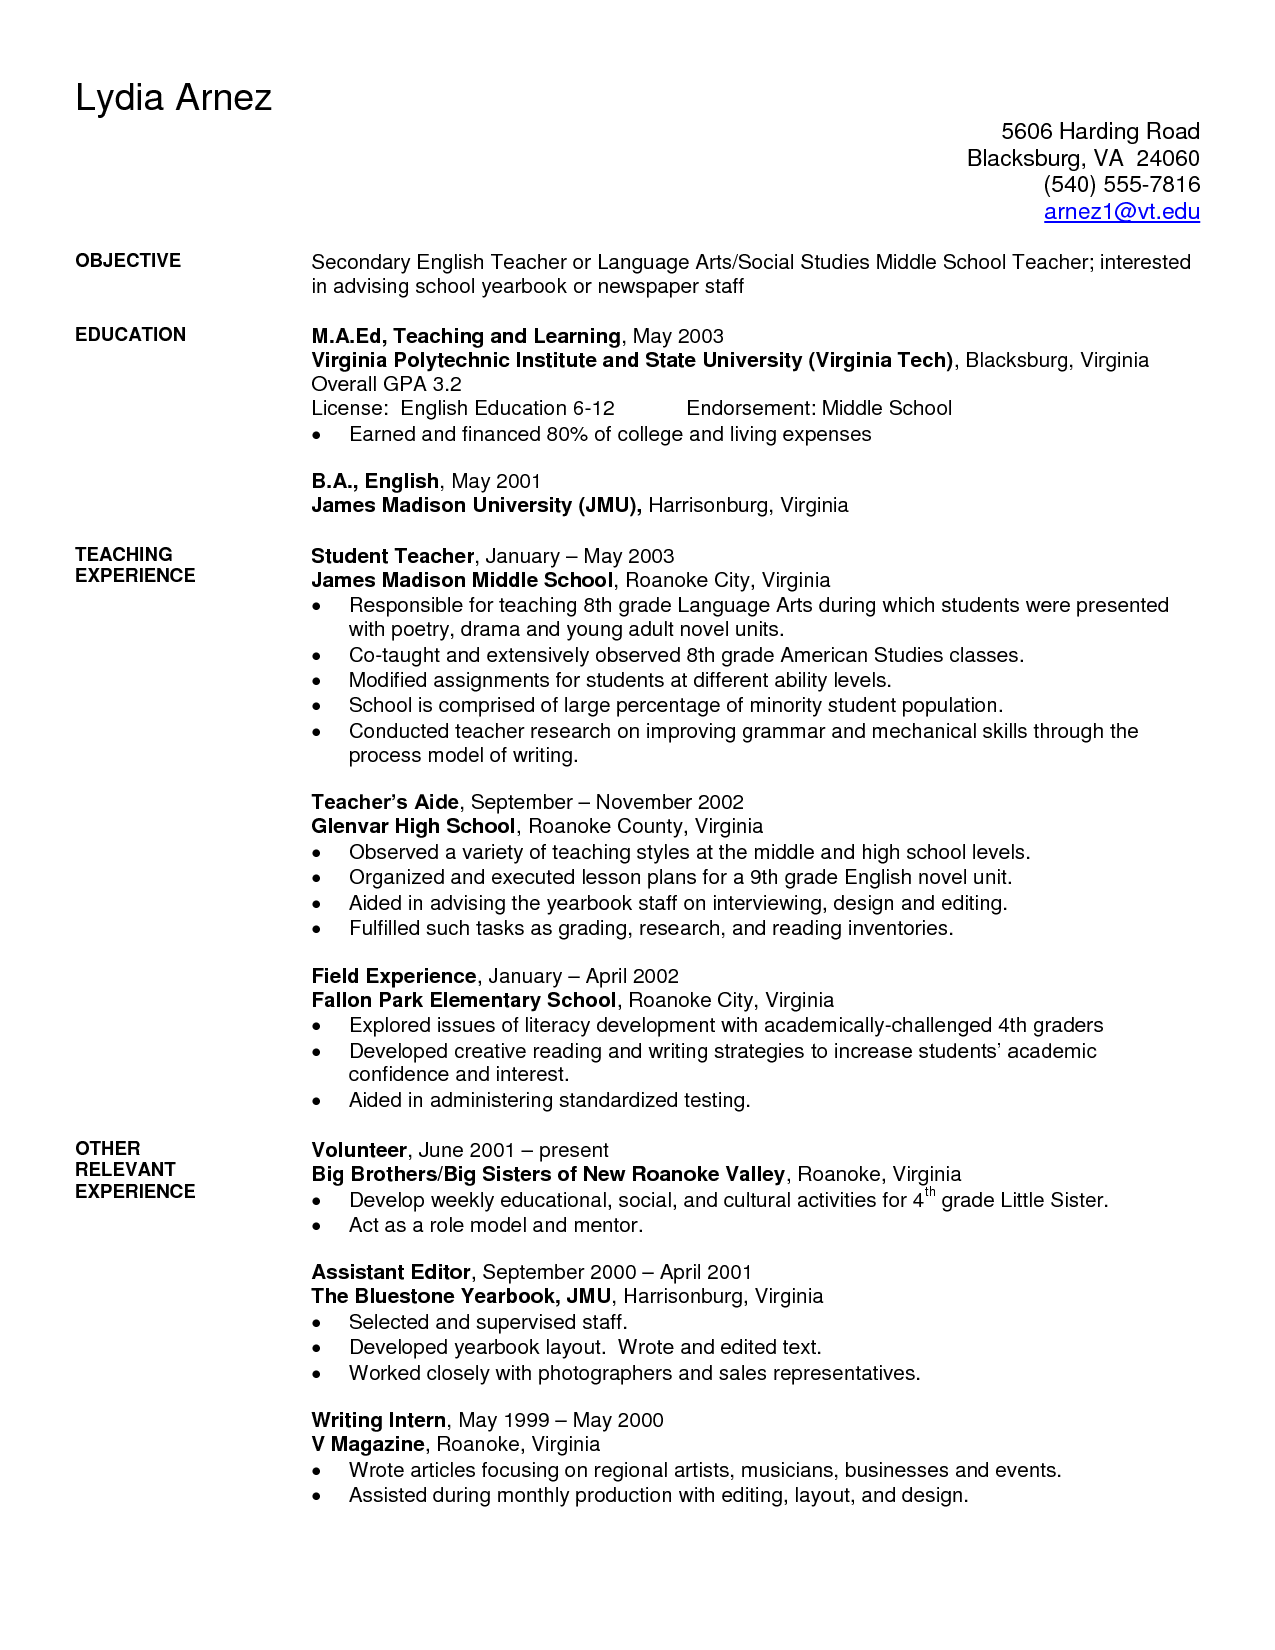 Objective For Teaching Resume Prepossessing Art Ceramic Teacher Resume  Resume  Good To Know  Pinterest Review